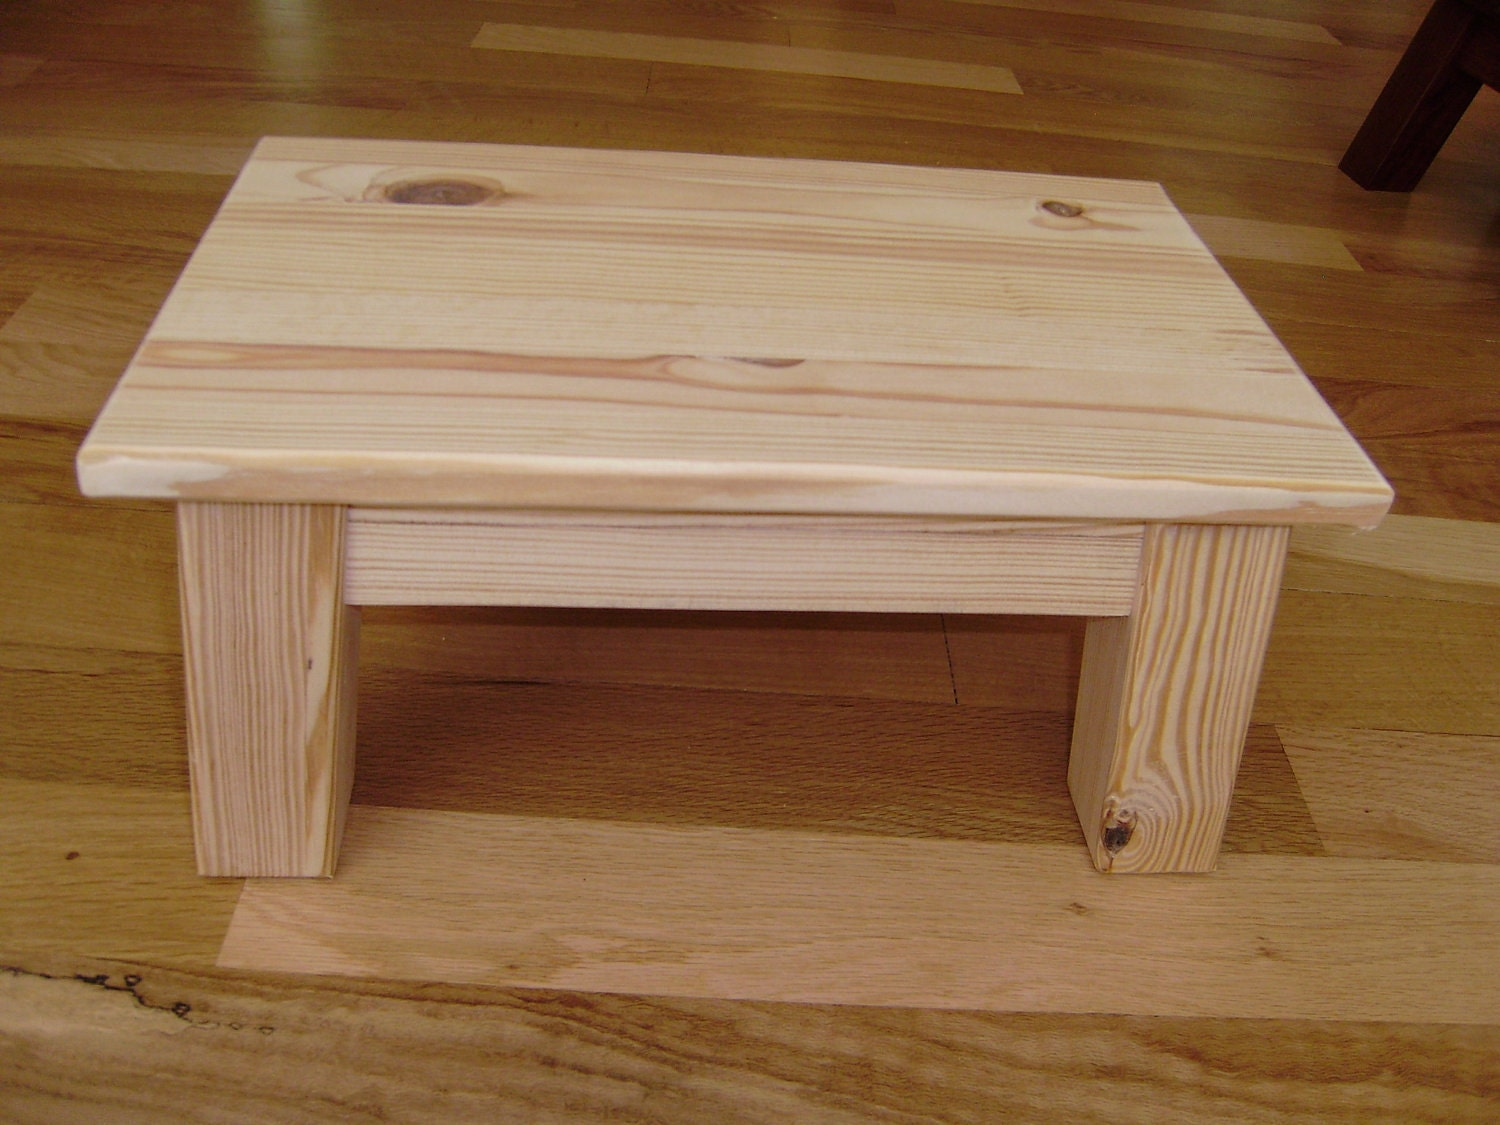 Woodworking woodwork footstool PDF Free Download